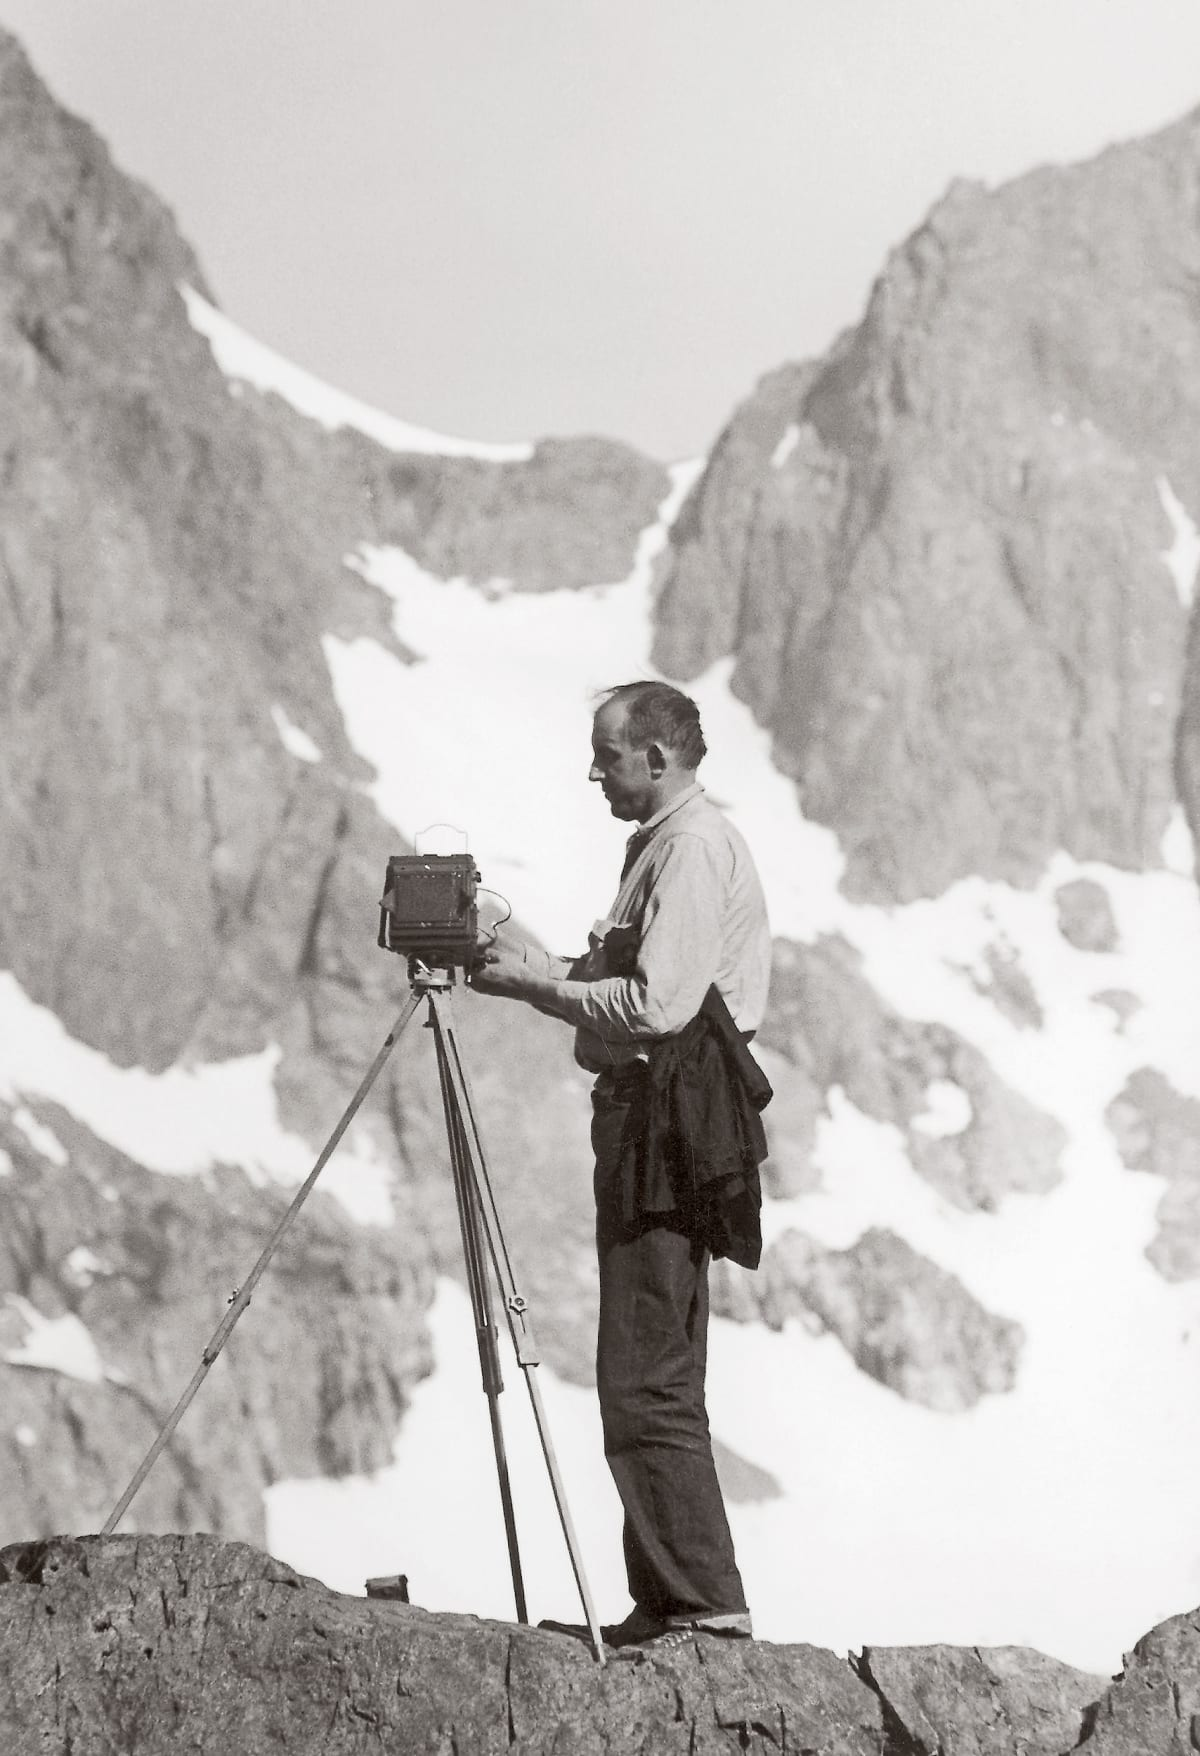 Ansel Adams in the Sierra, late 1930s When Ron worked for Ansel Adams, they would go into the high country of the Sierra Nevada to photograph. In this shot, Ron captured Ansel on the moutain, which Ron referred to Lightning Ridge. A moment later, they descended the mountain quickly as a storm gathered momentum and was moving in.